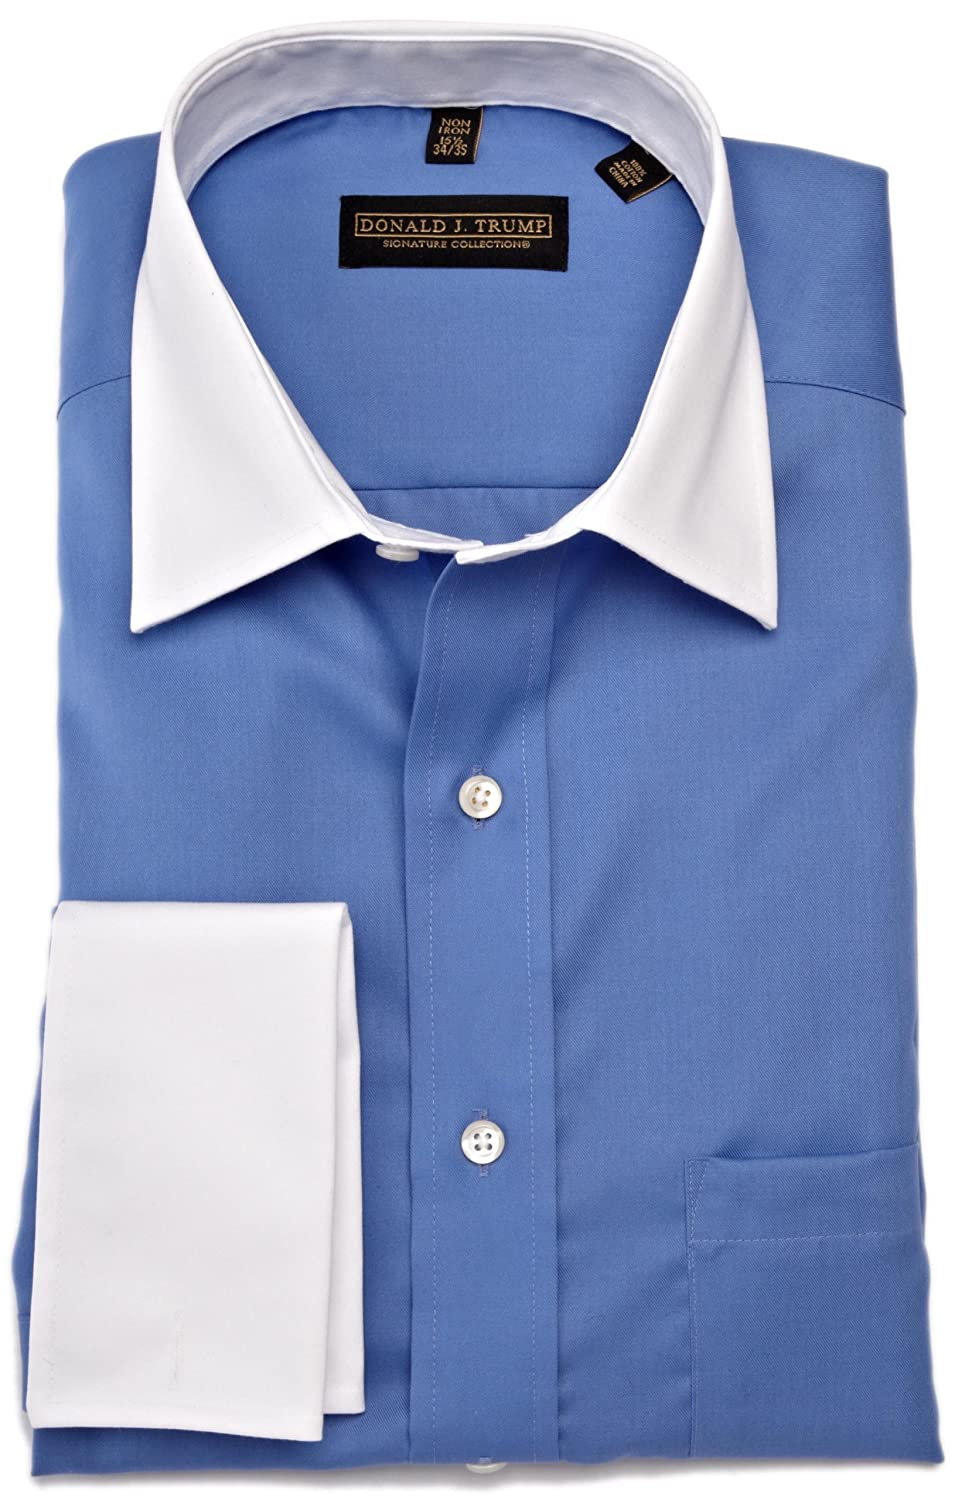 Donald Trump Men's Spread Collar Twill Solid Woven Shirt (Blue)